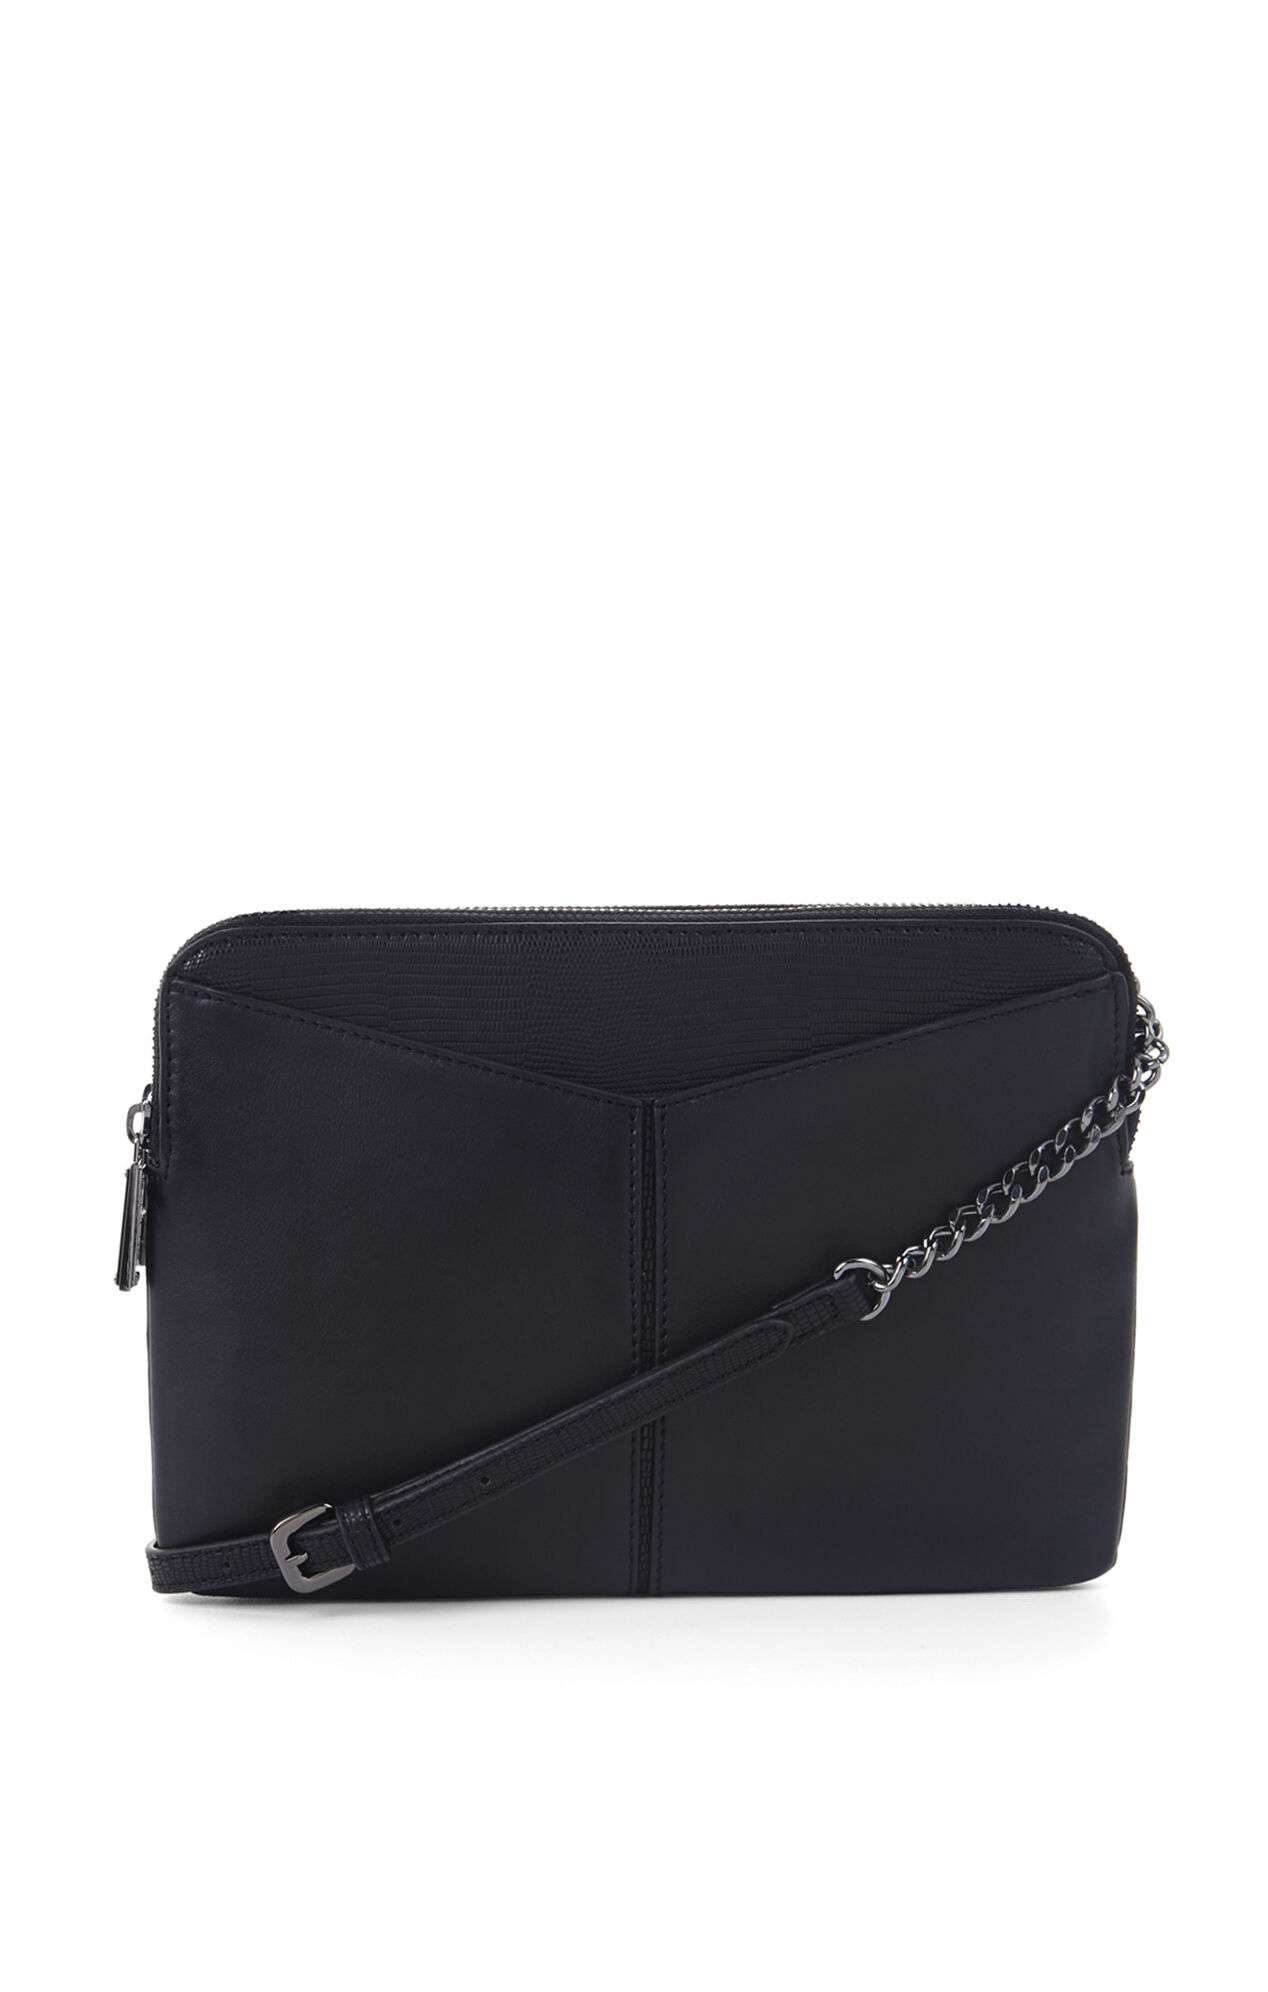 Runway Candace Shoulder Bag